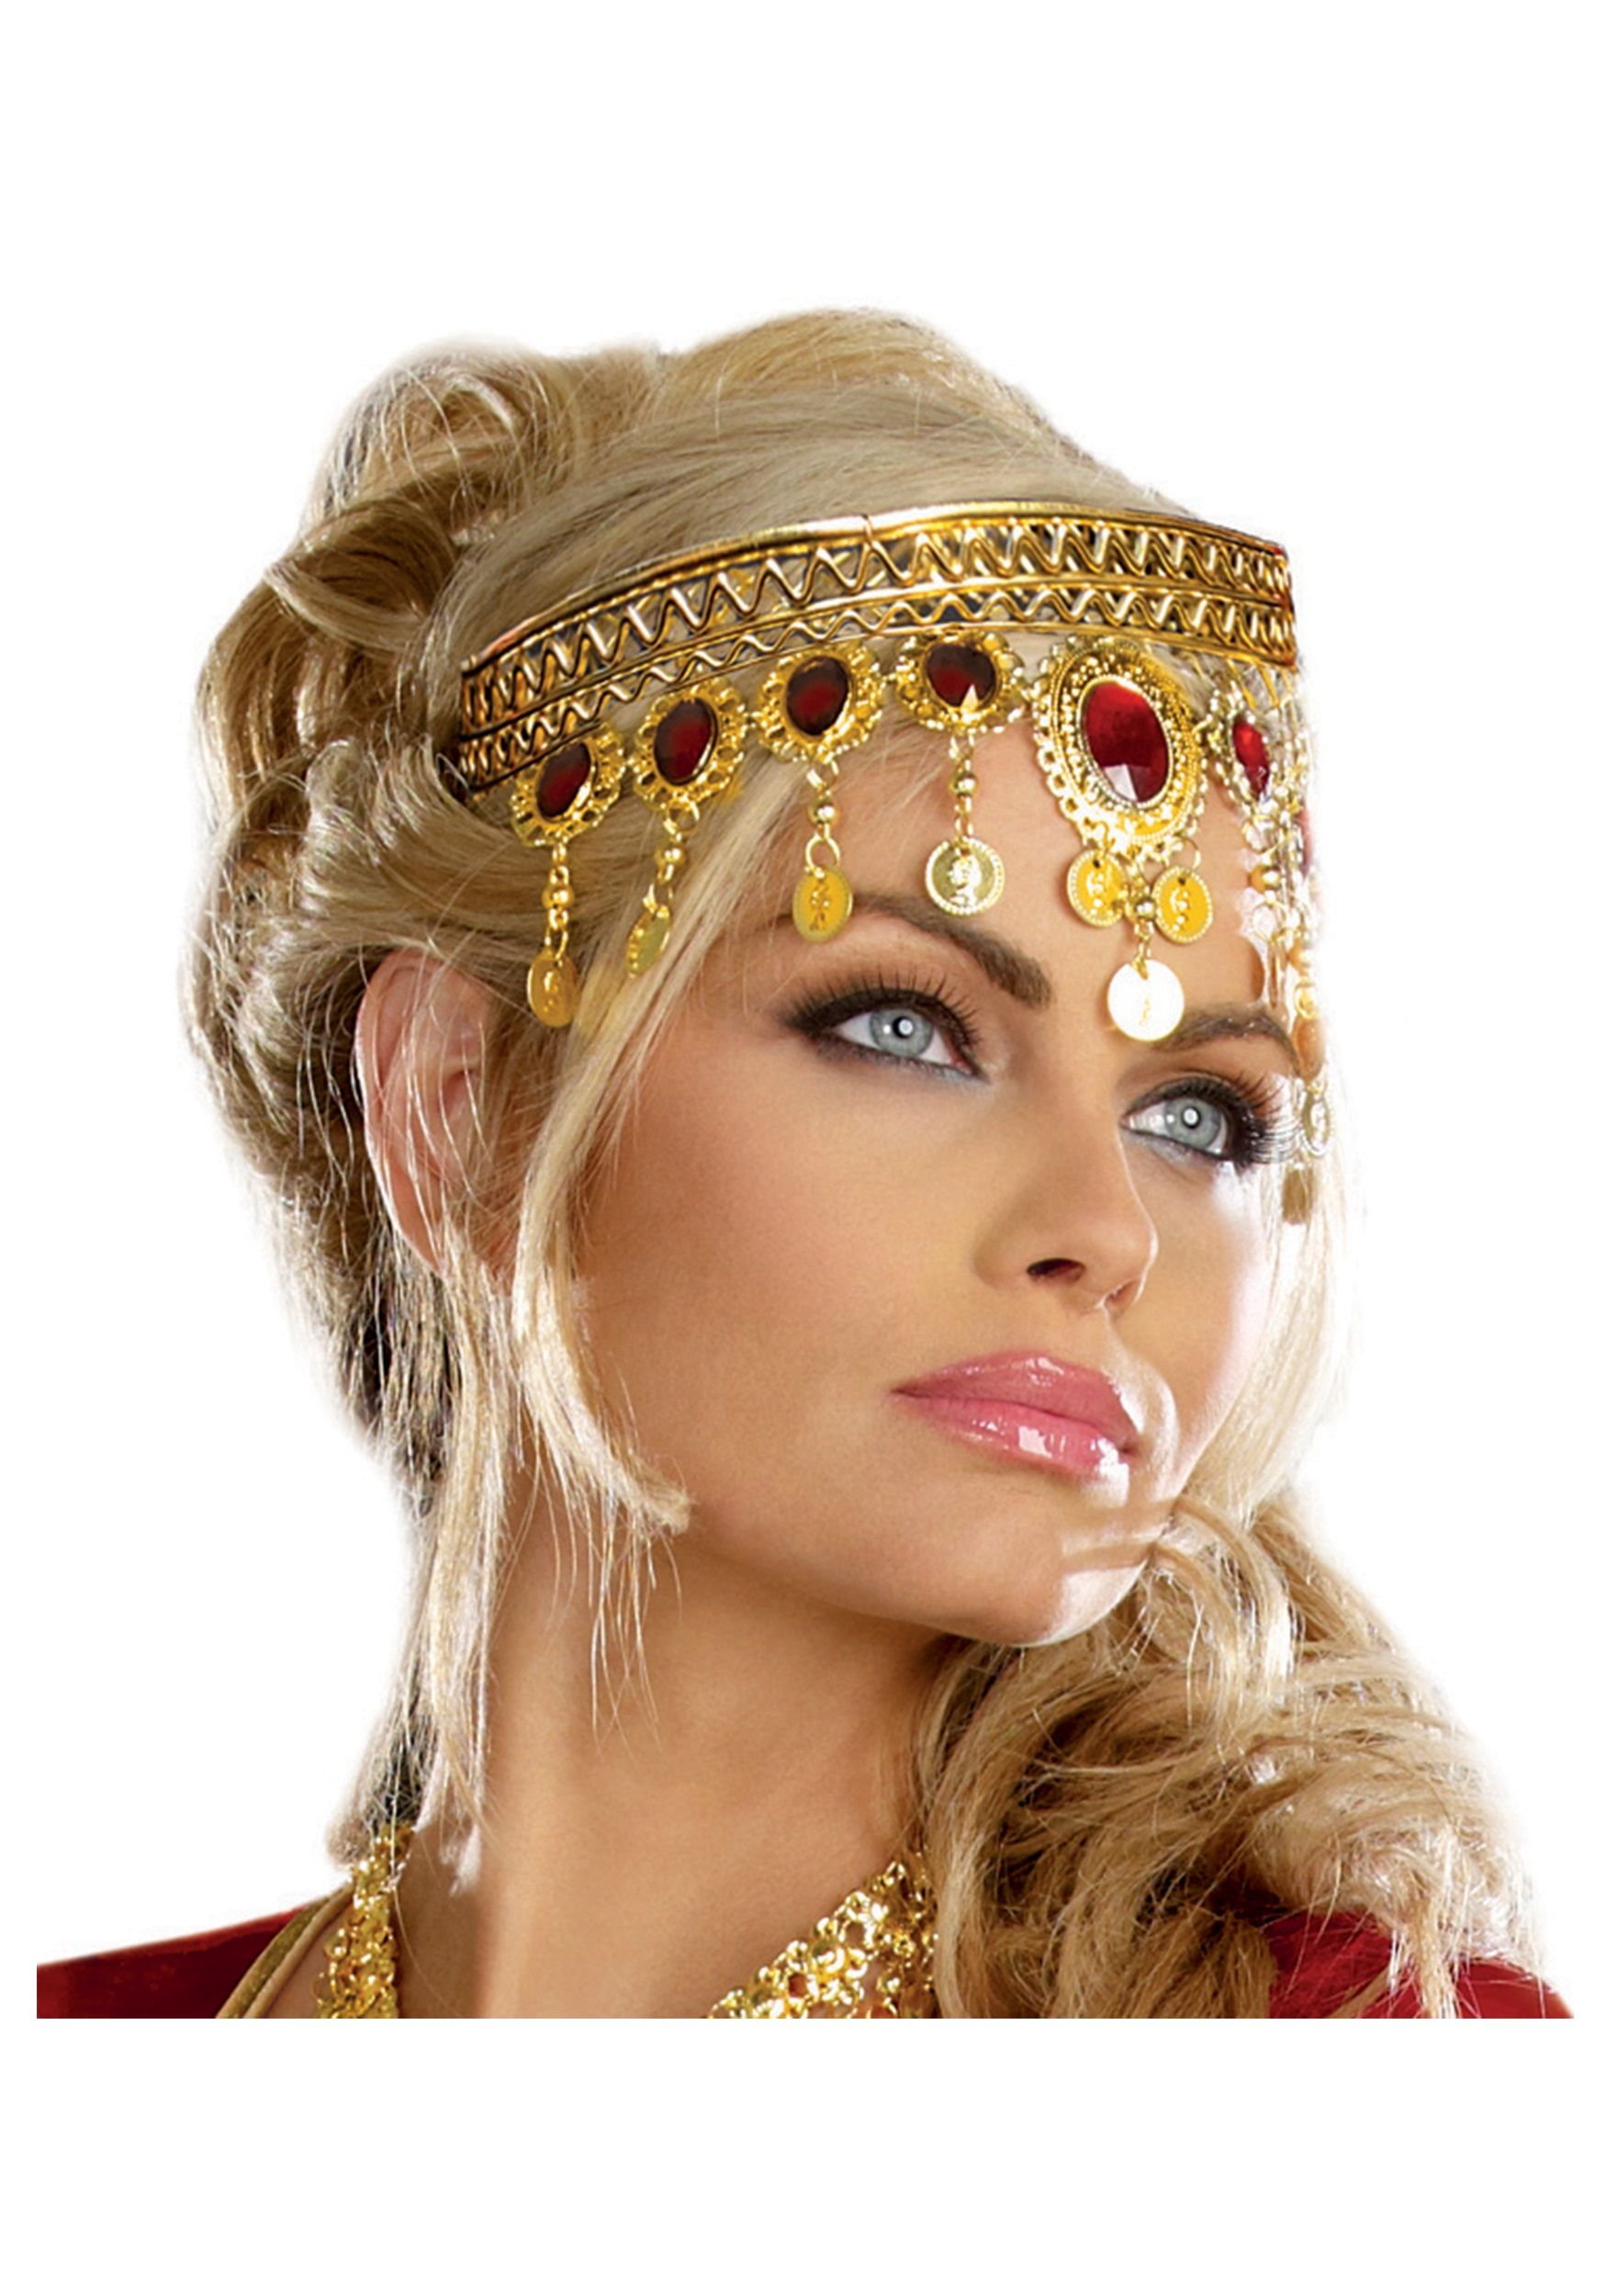 Find great deals on eBay for costume headpiece. Shop with confidence.